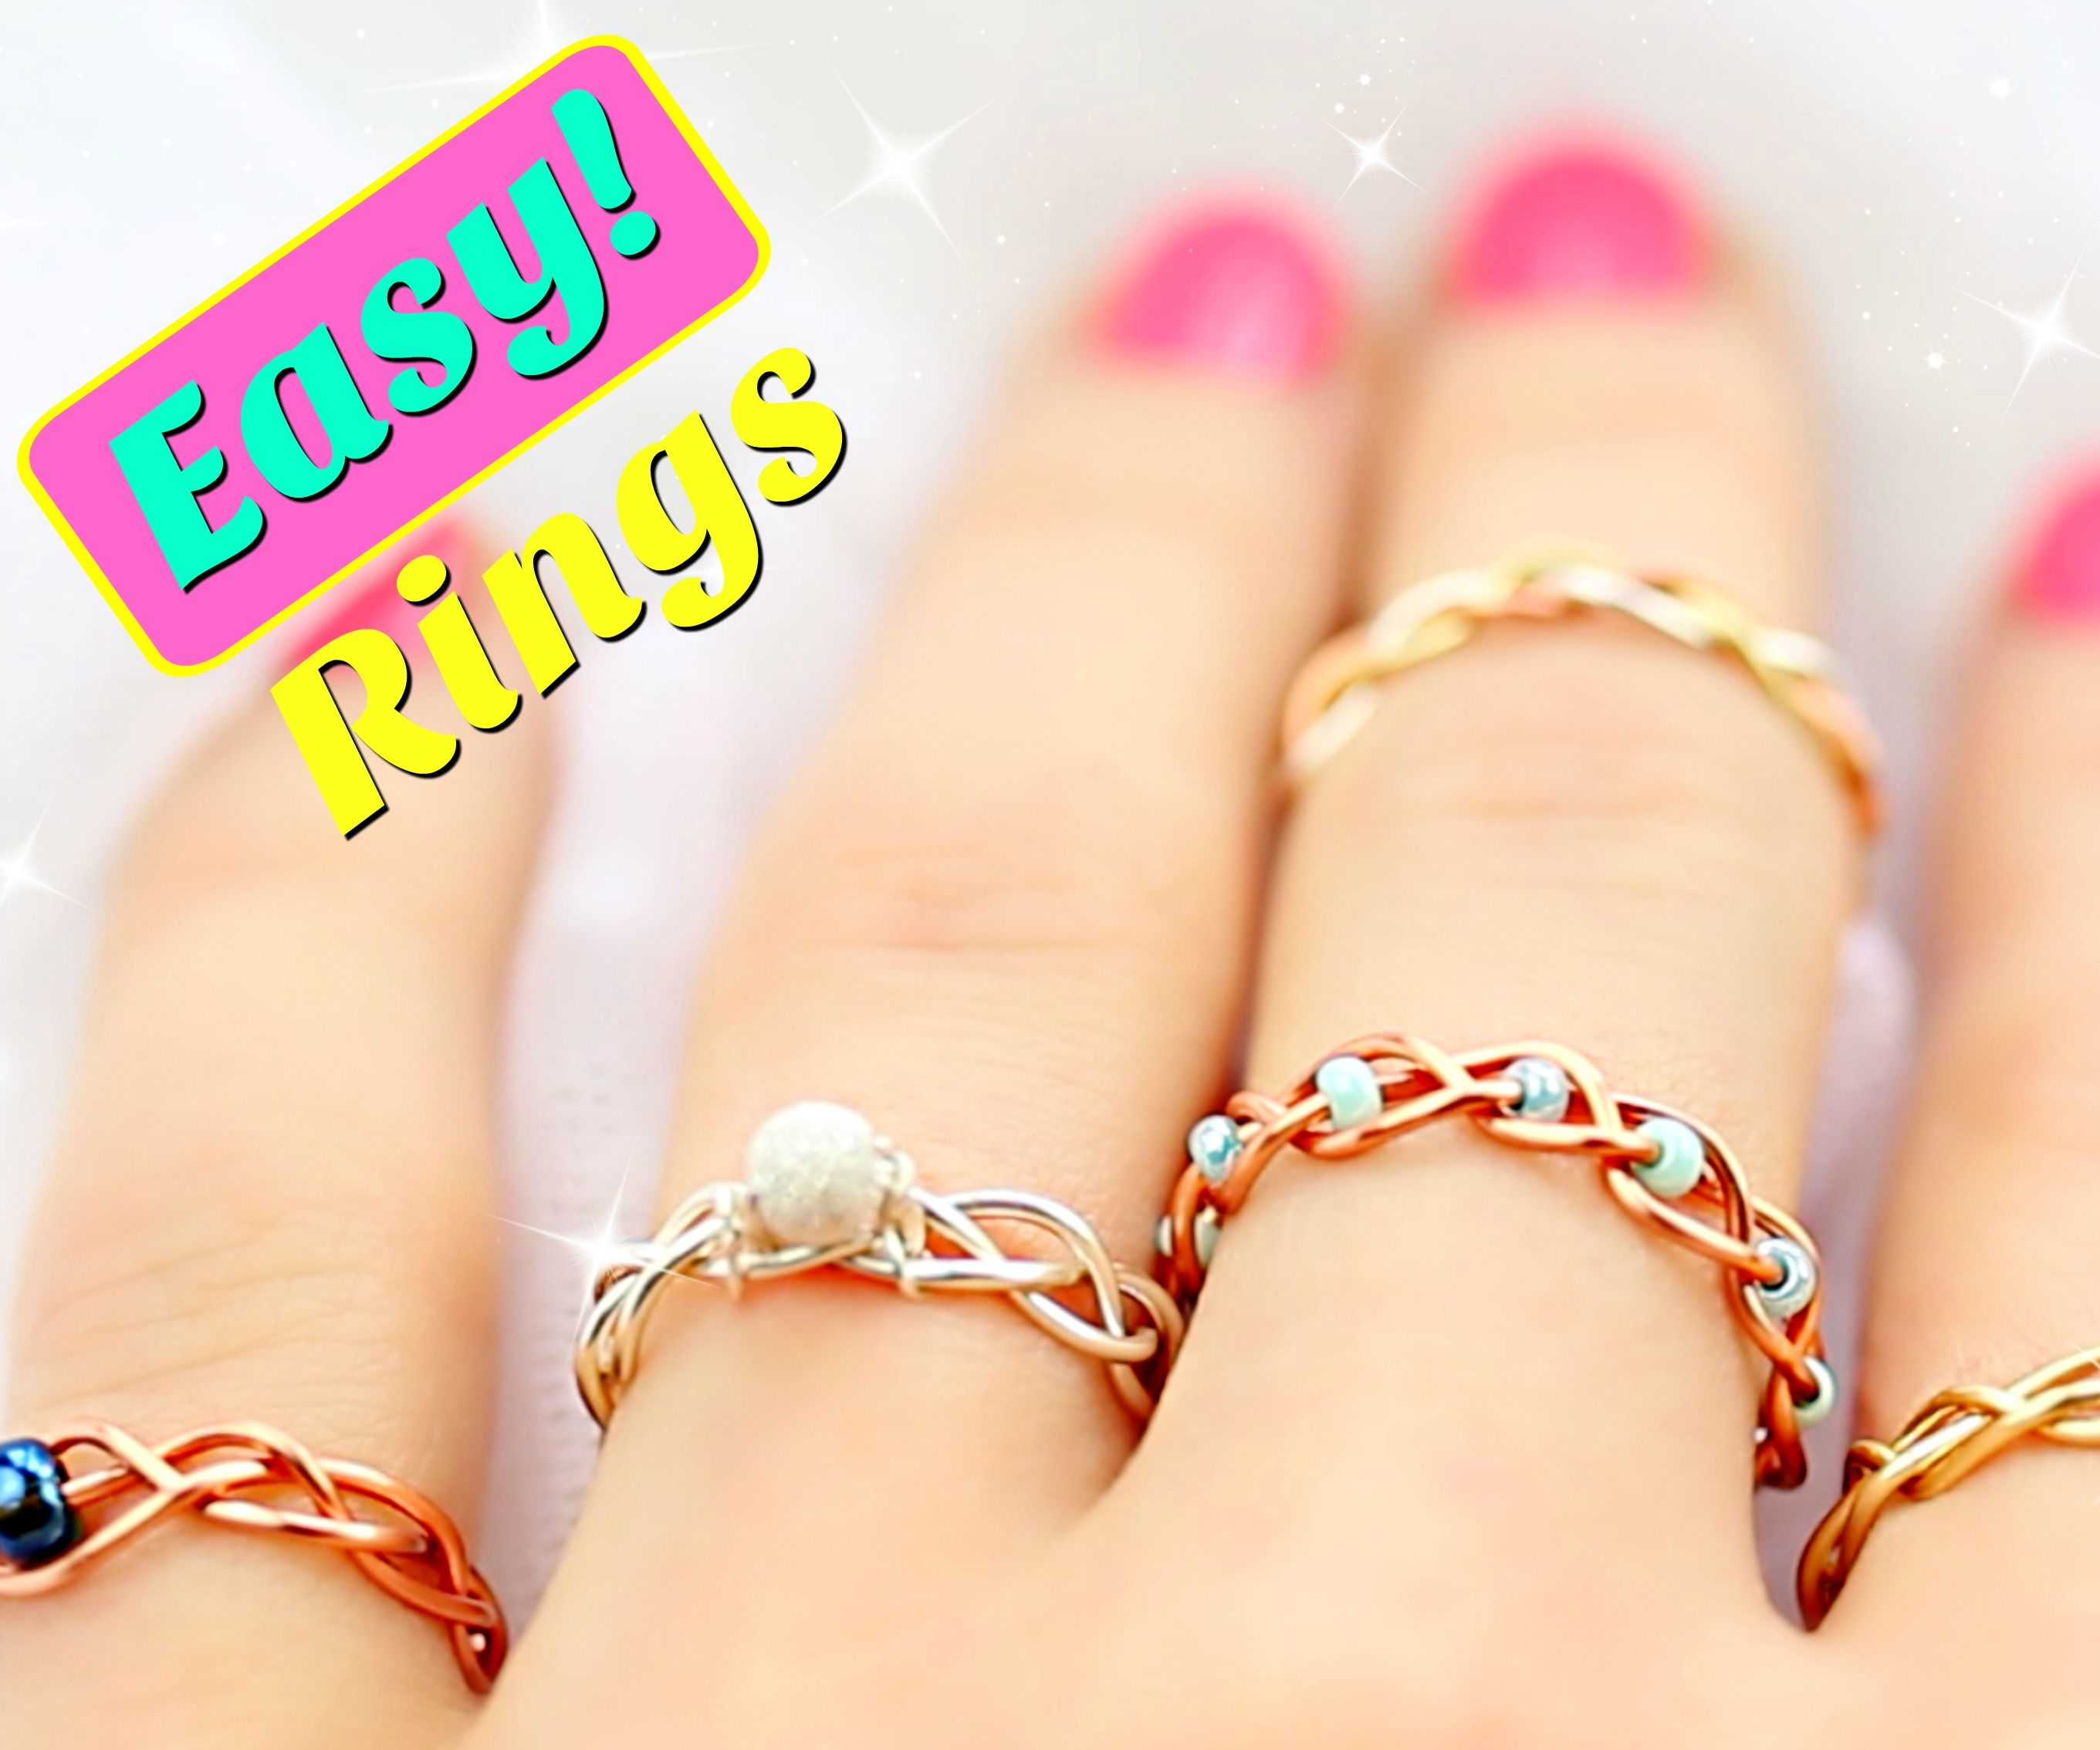 Jewelry Beads Wire-Wrapped Jewelry Colorful Rings Homemade Rings Multicolor Rings Colorful Jewelry Bead Wire-Wrapped Rings Multicolor